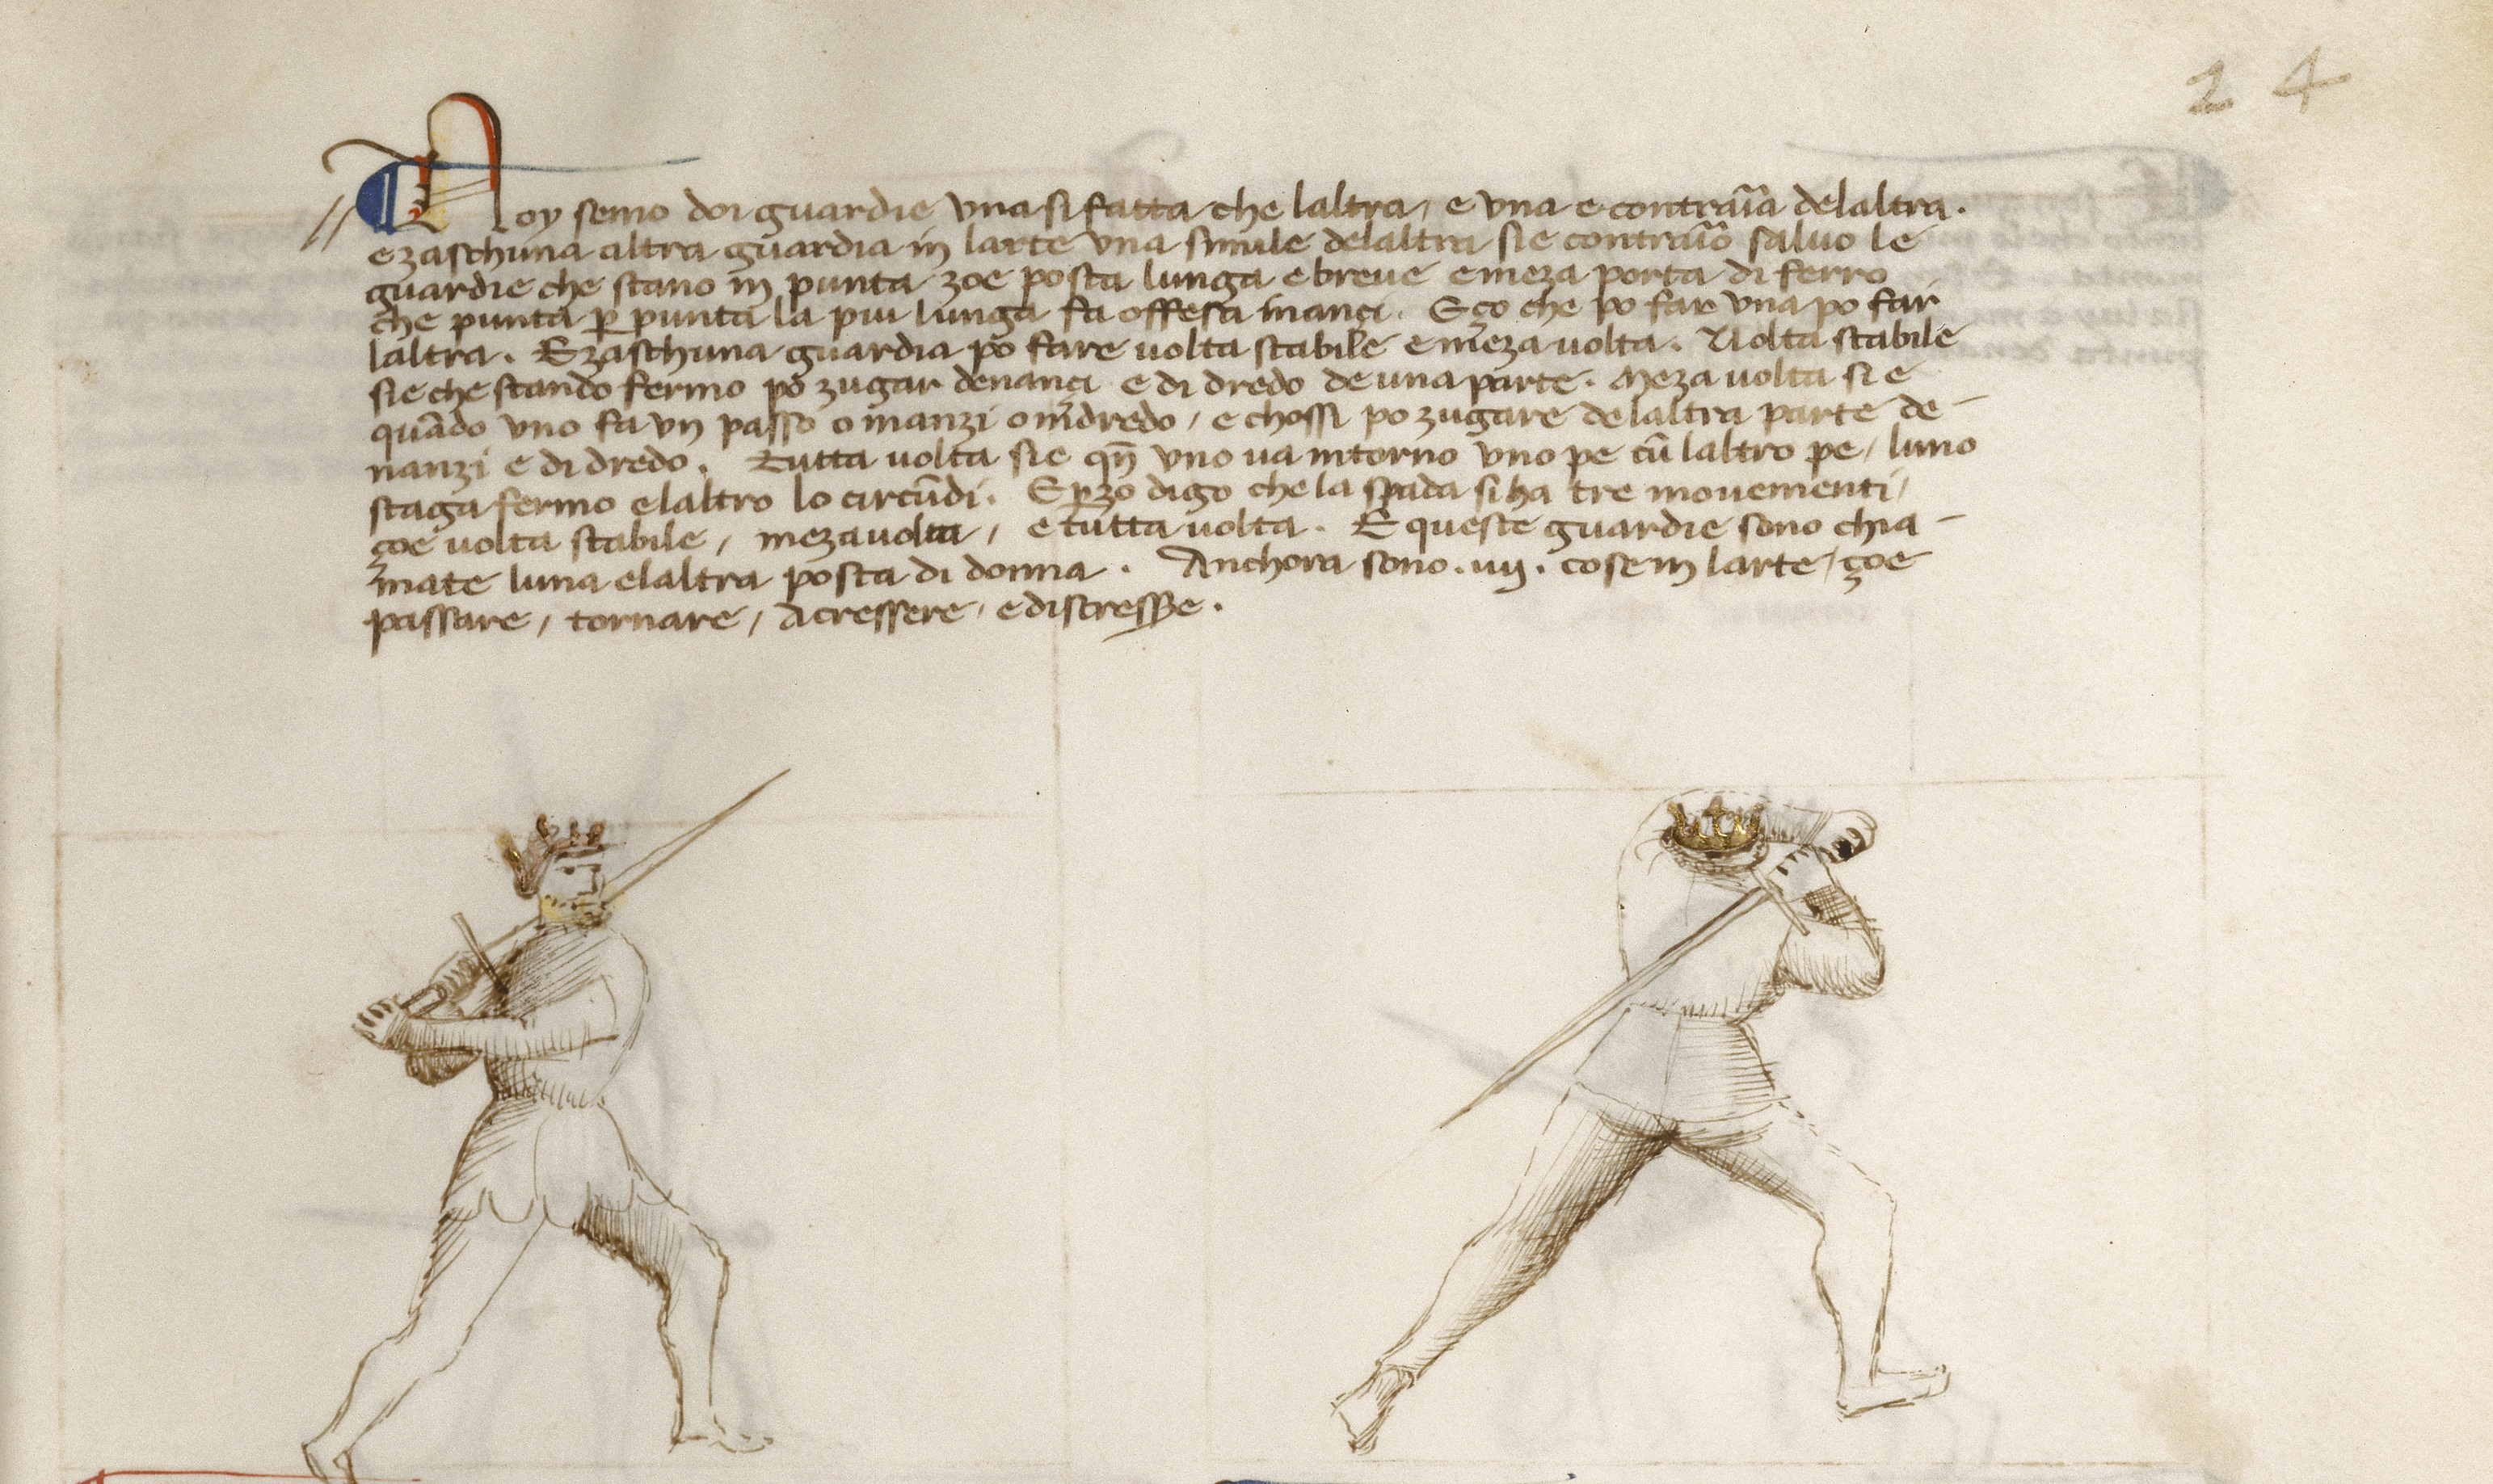 SWORDSMANSHIP IN THE ART OF ARMS, PART ONE:  THE SIX MASTERS OF SWORD COMBAT